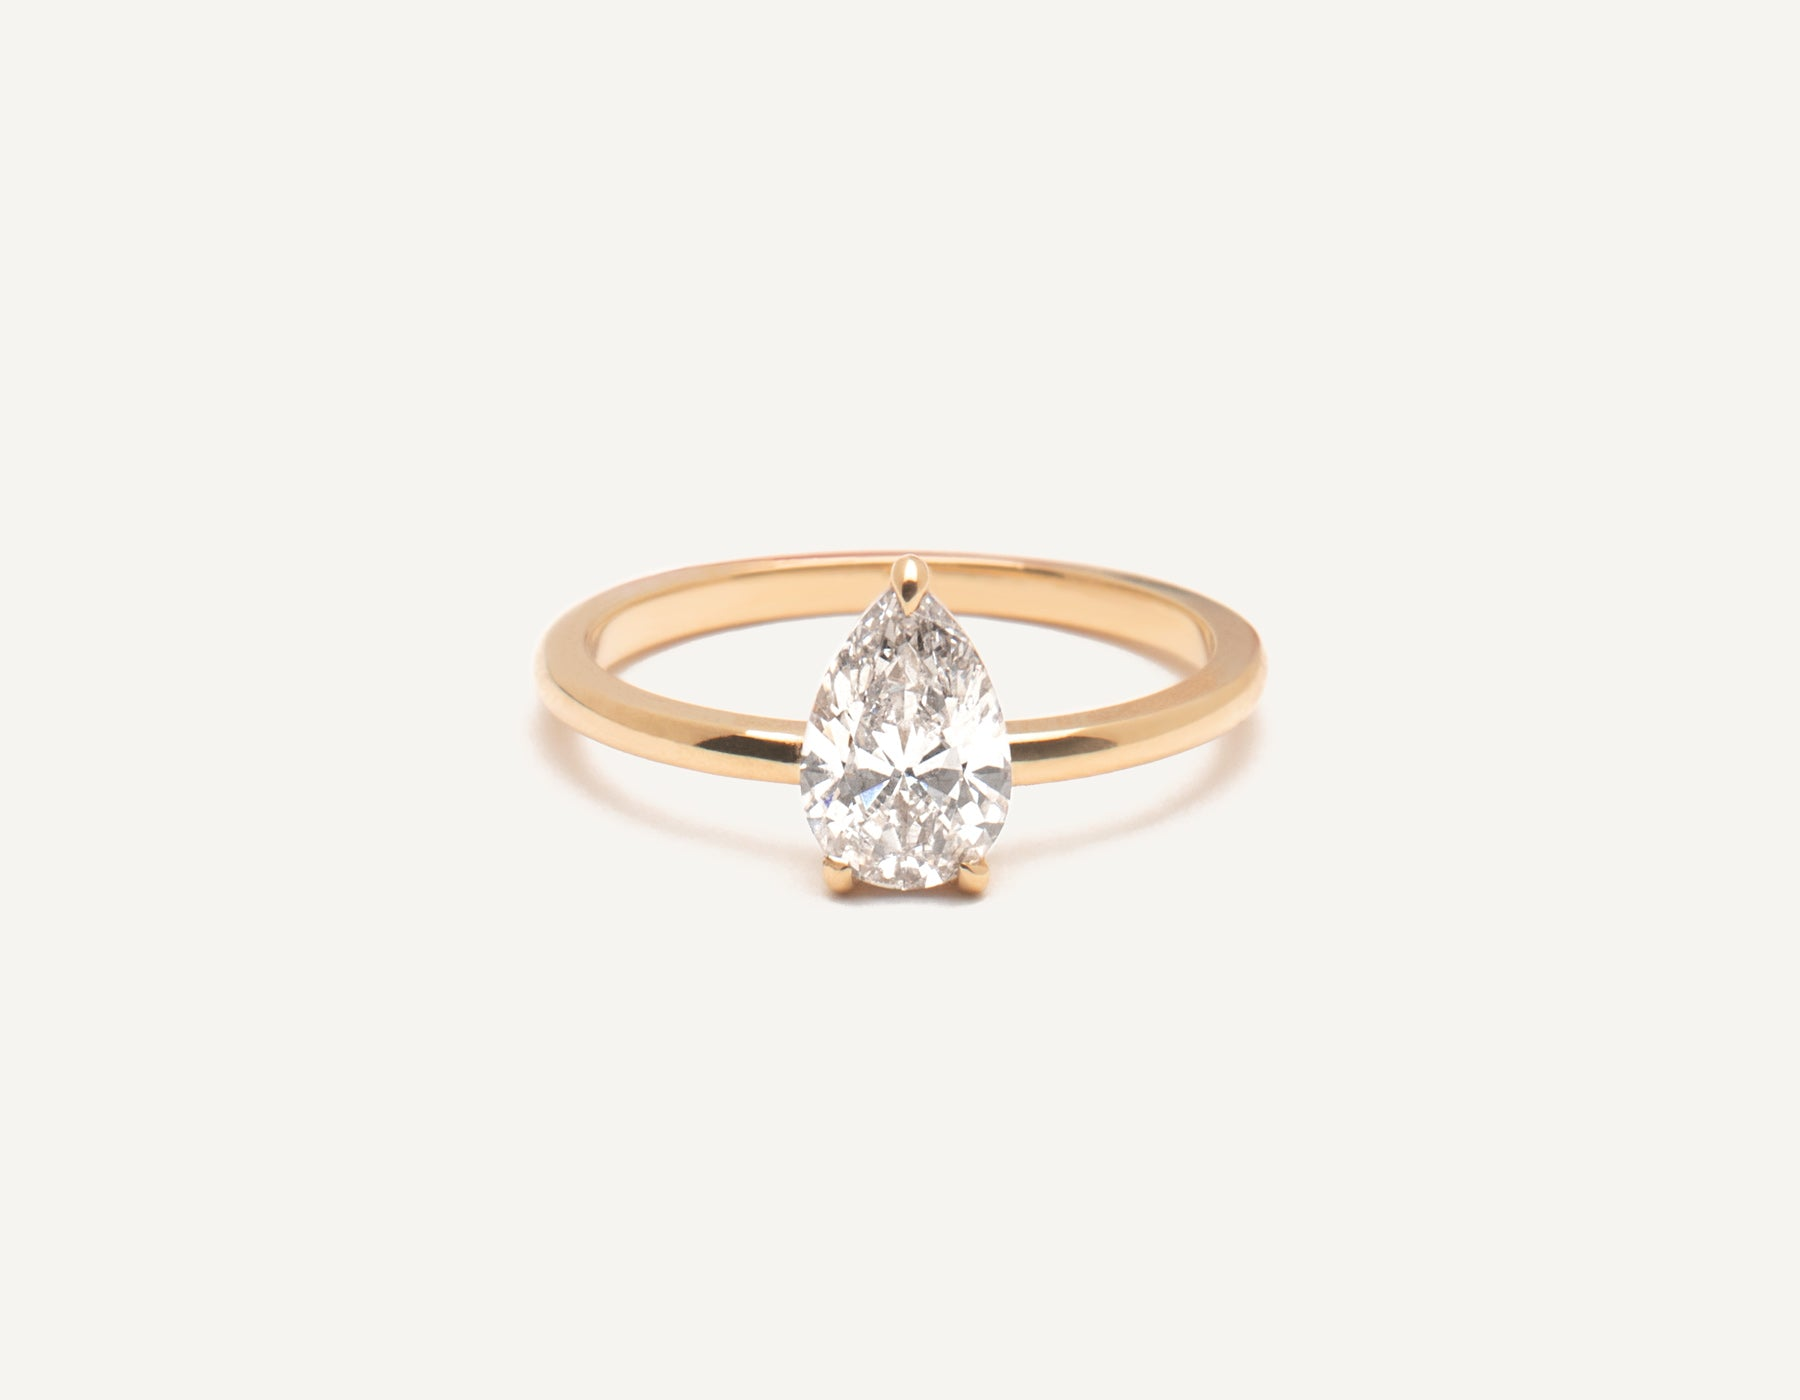 Minimalist 18k solid rose gold The pear engagement ring 1 ct diamond Vrai and Oro